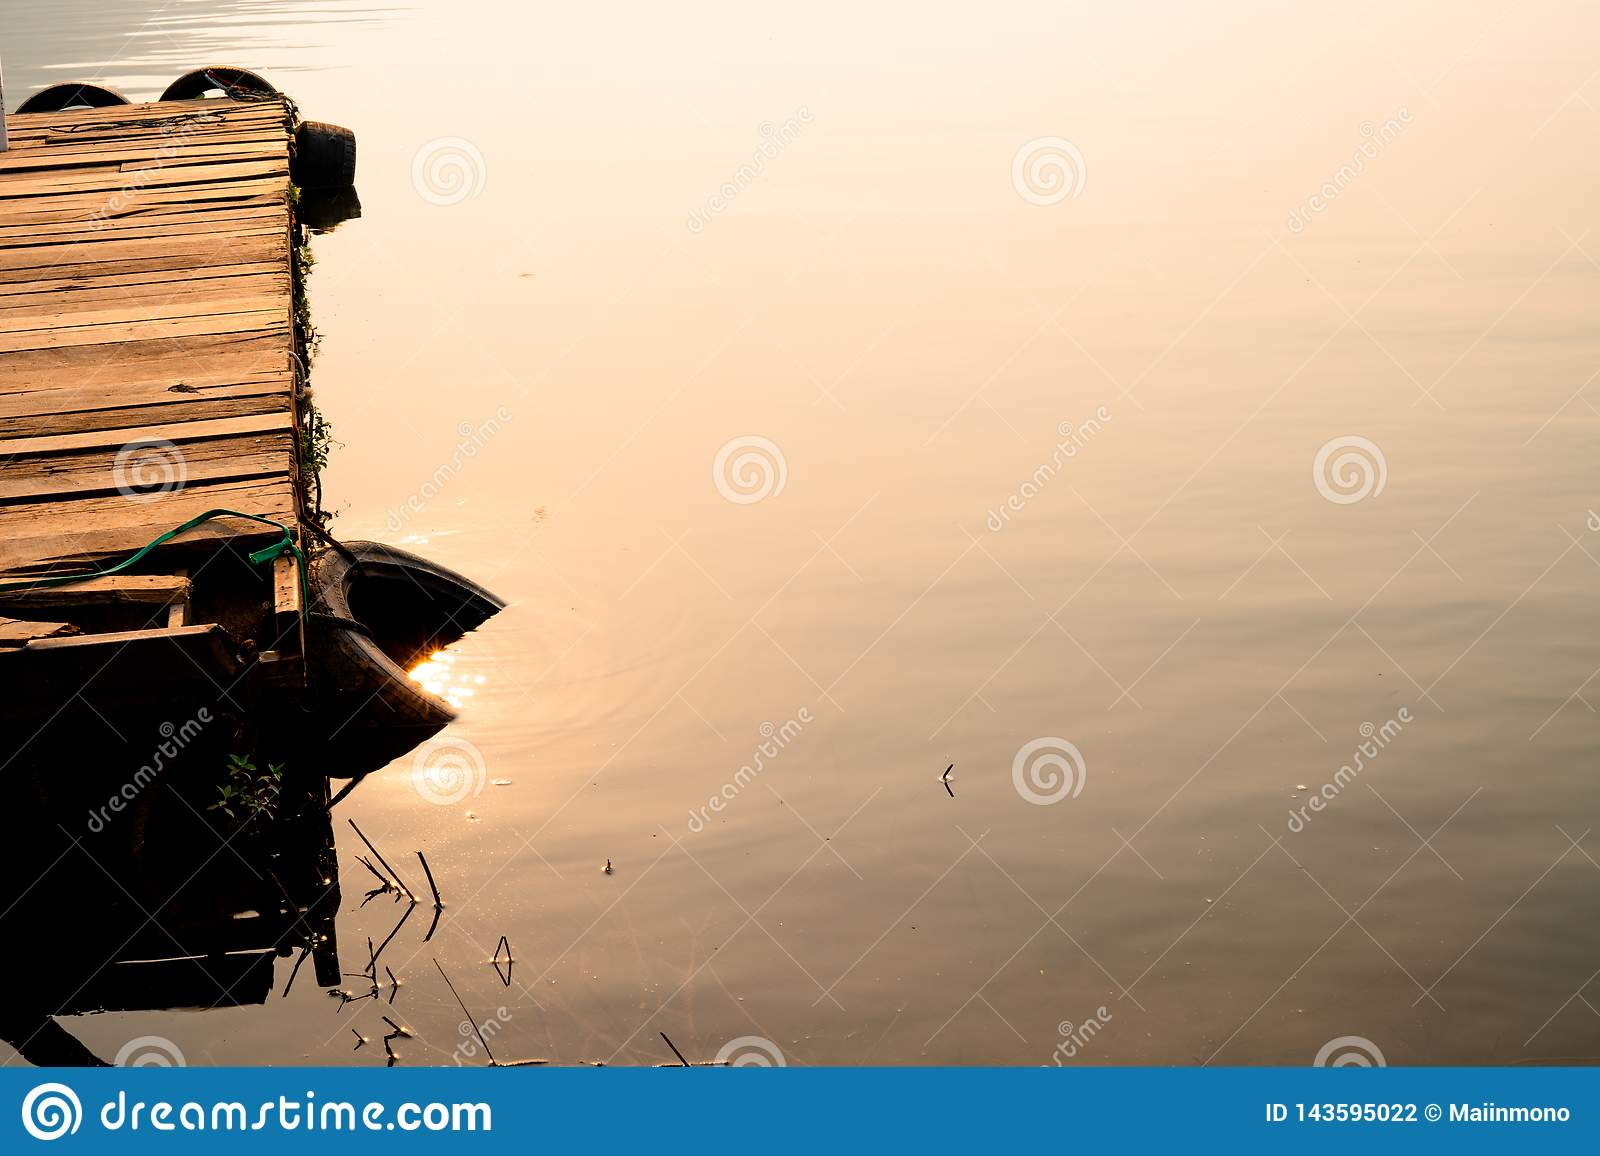 Wooden pontoon surrounded with lifebuoy floating on ripple water surface with reflection of sun light during sunrise.